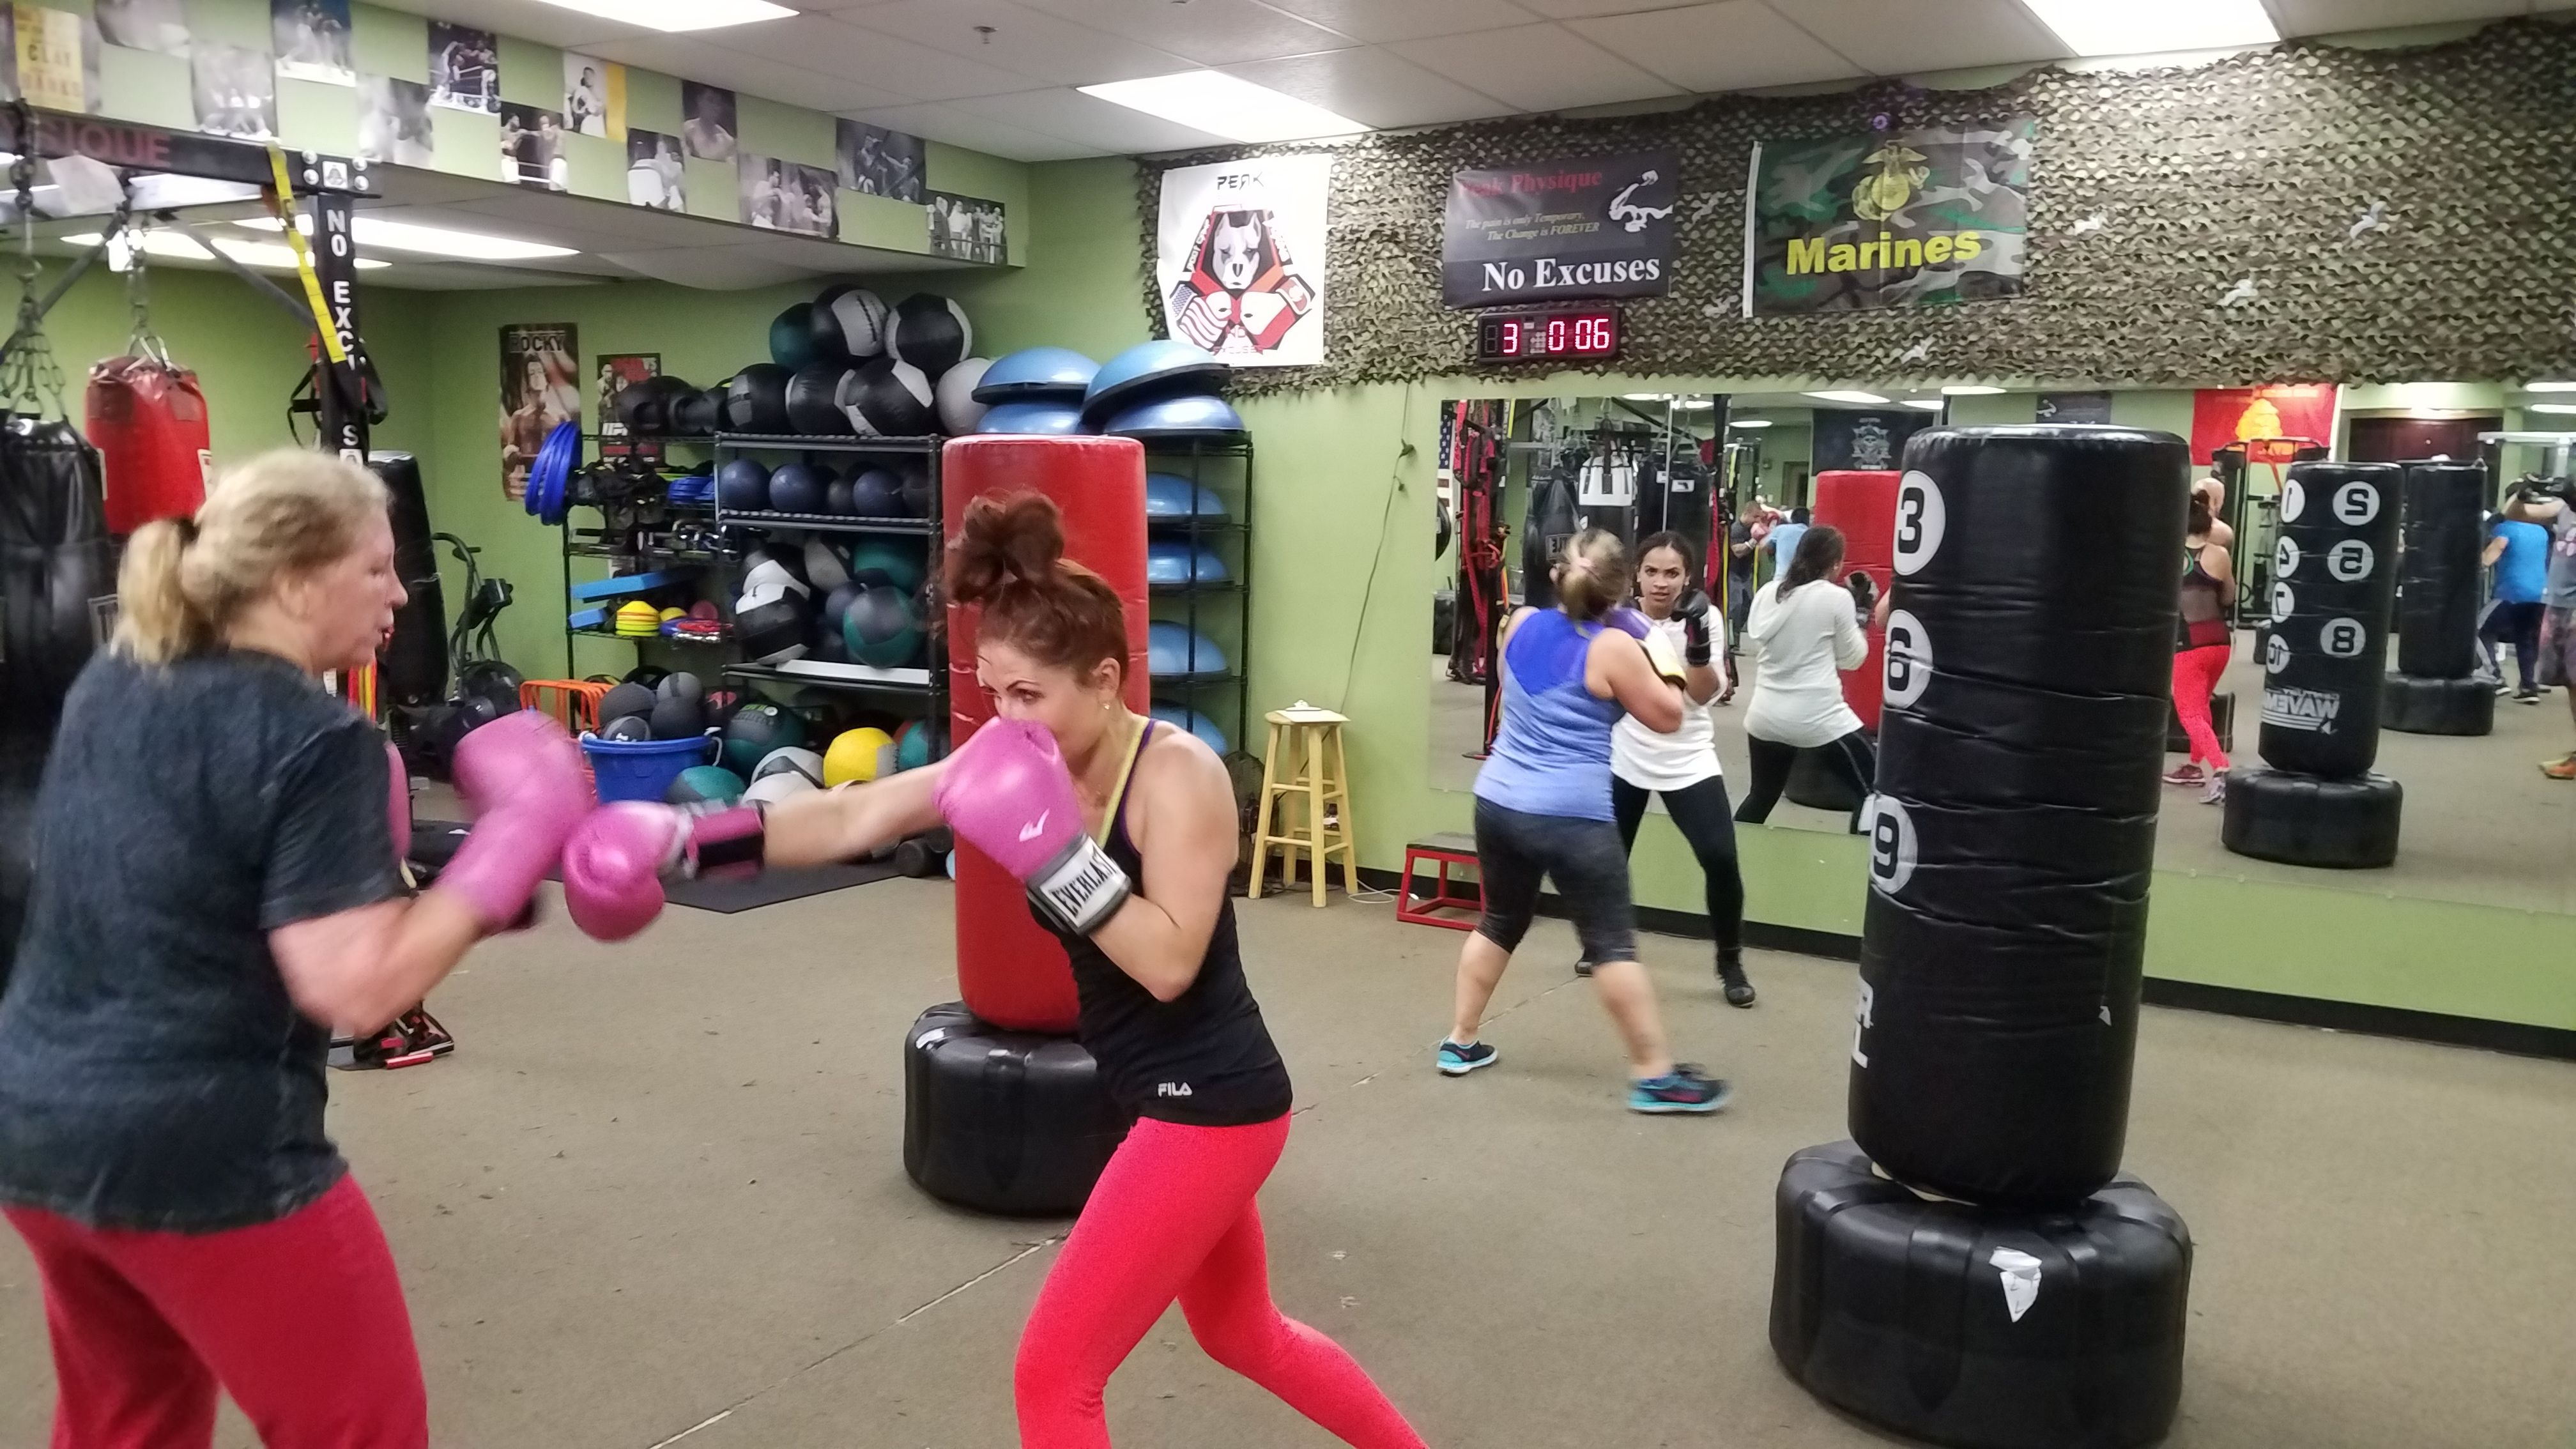 Peak Physique Personal Training Boot Camp Boxing No Excuses Kickboxing Classes Personal Training Bootcamp